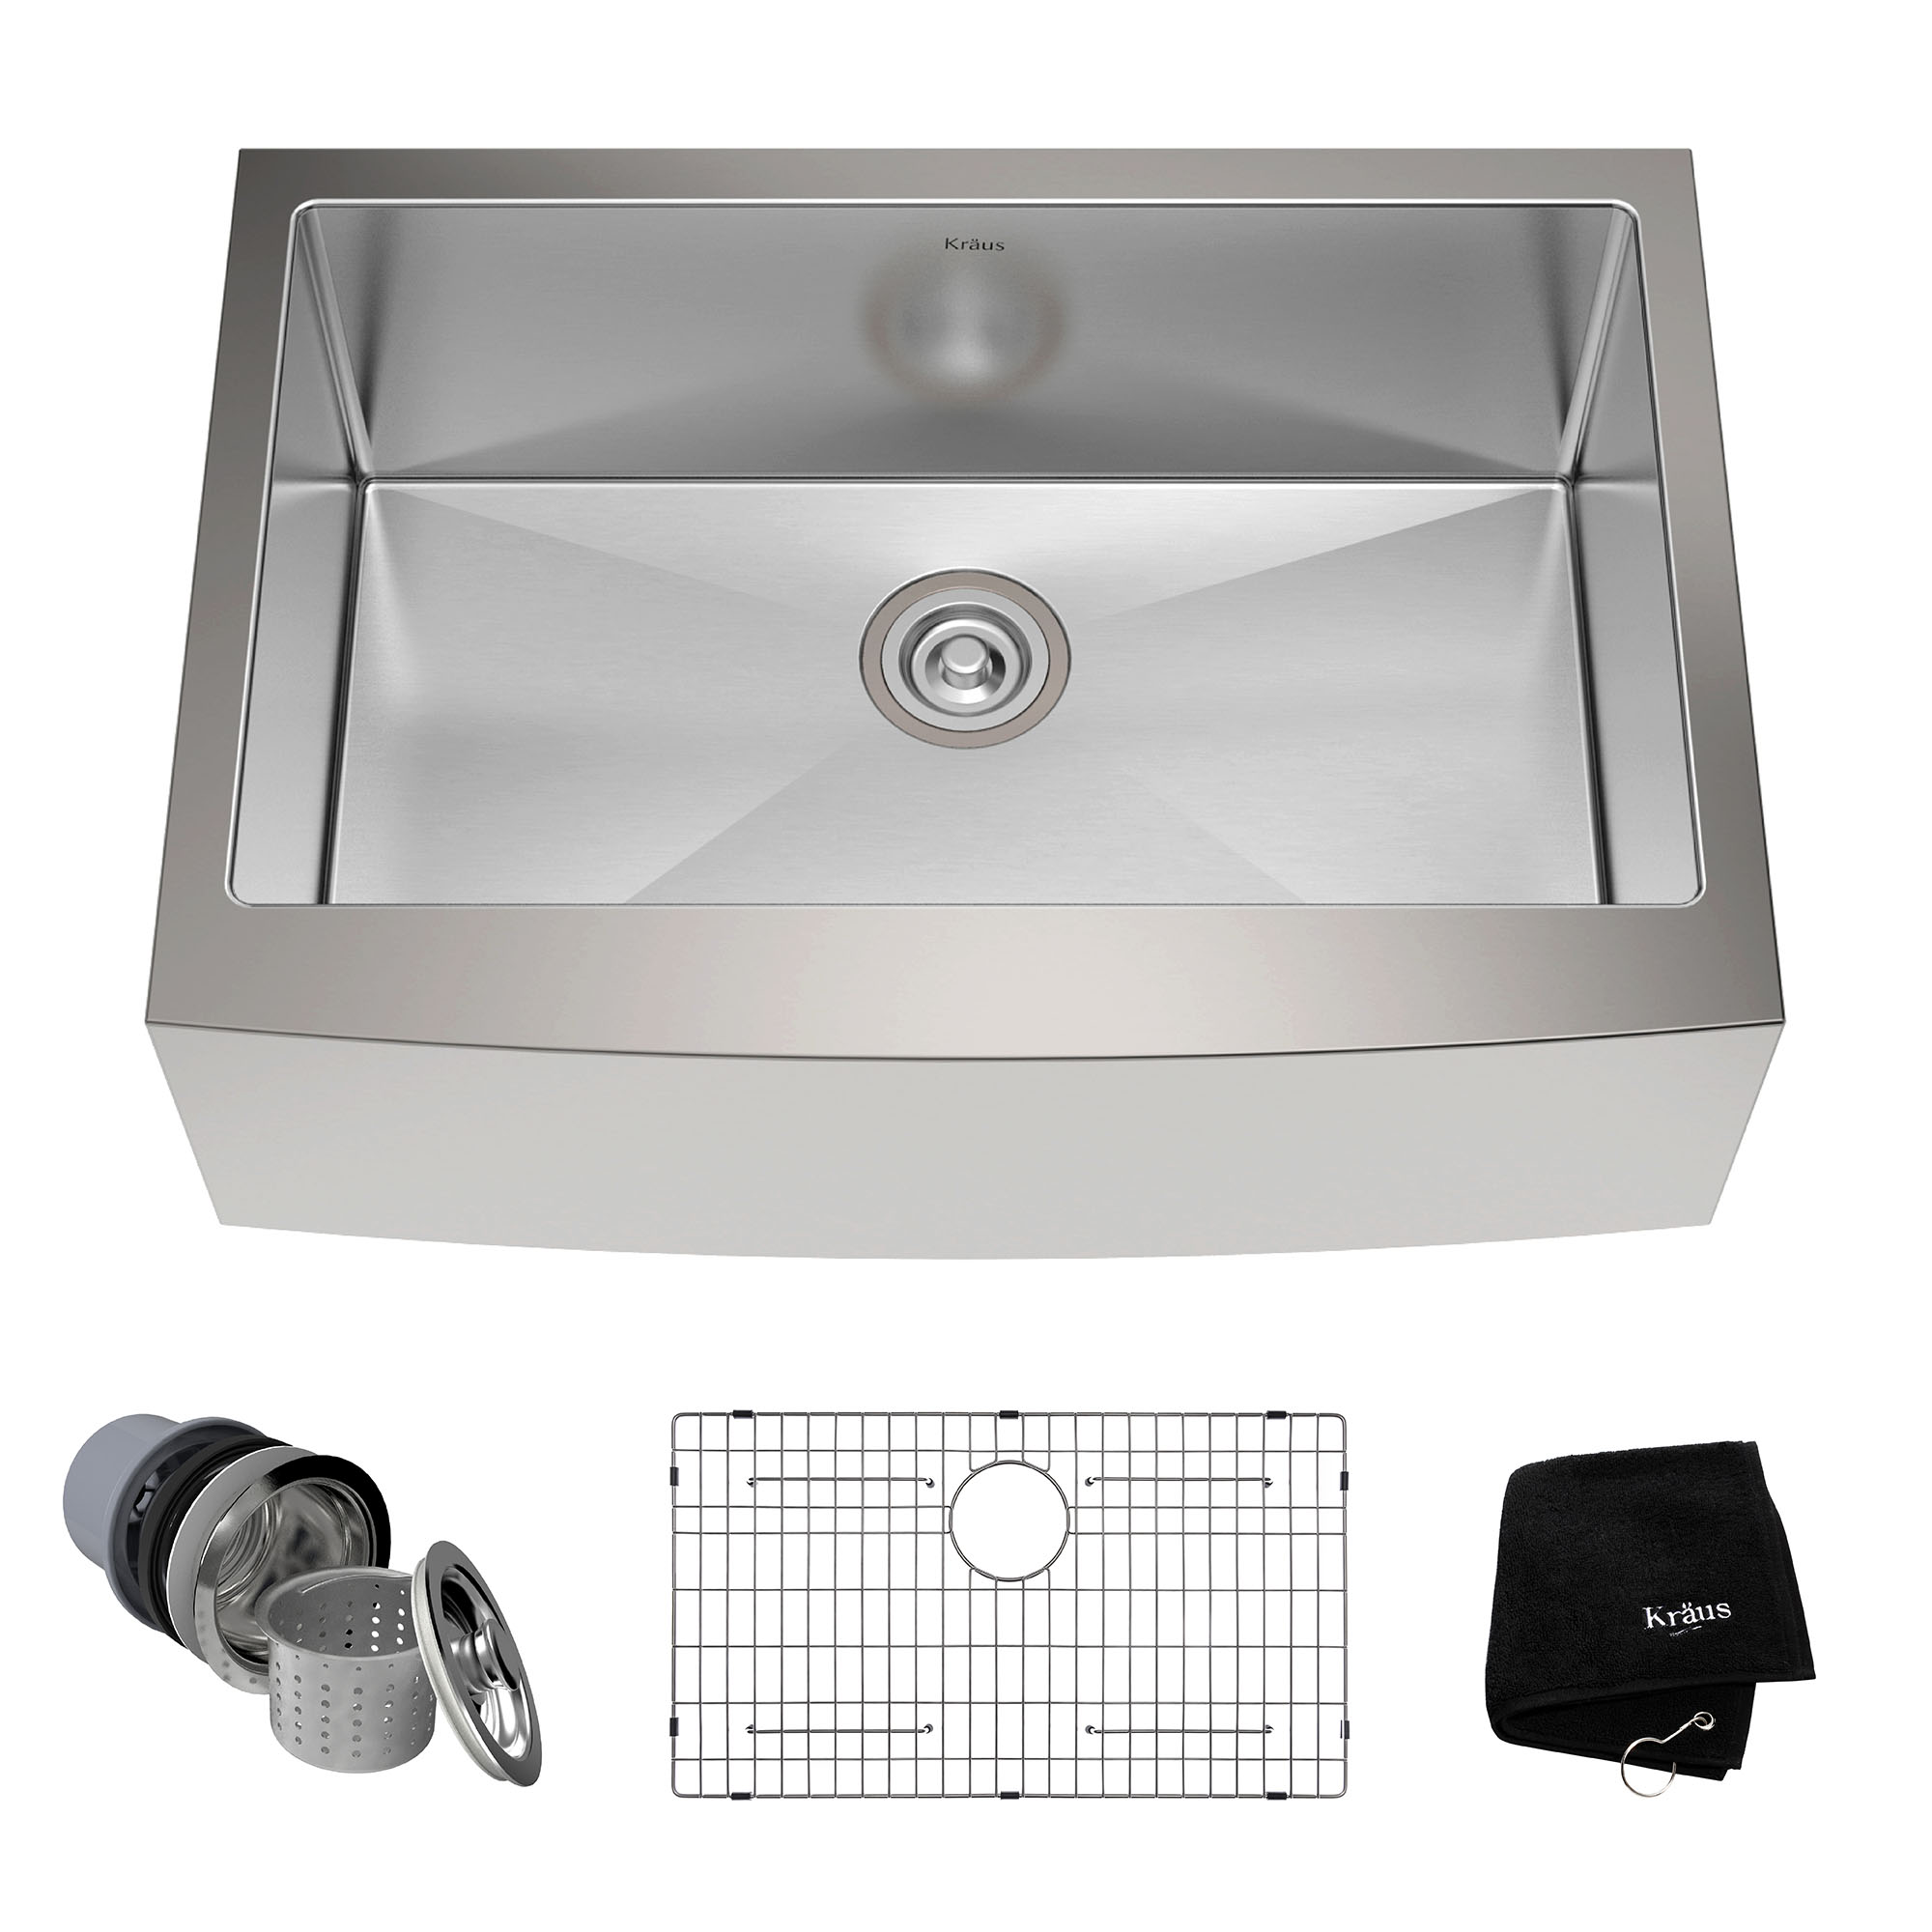 single bowl stainless kitchen sink carts kraus 30 farmhouse steel with soundproofing walmart com